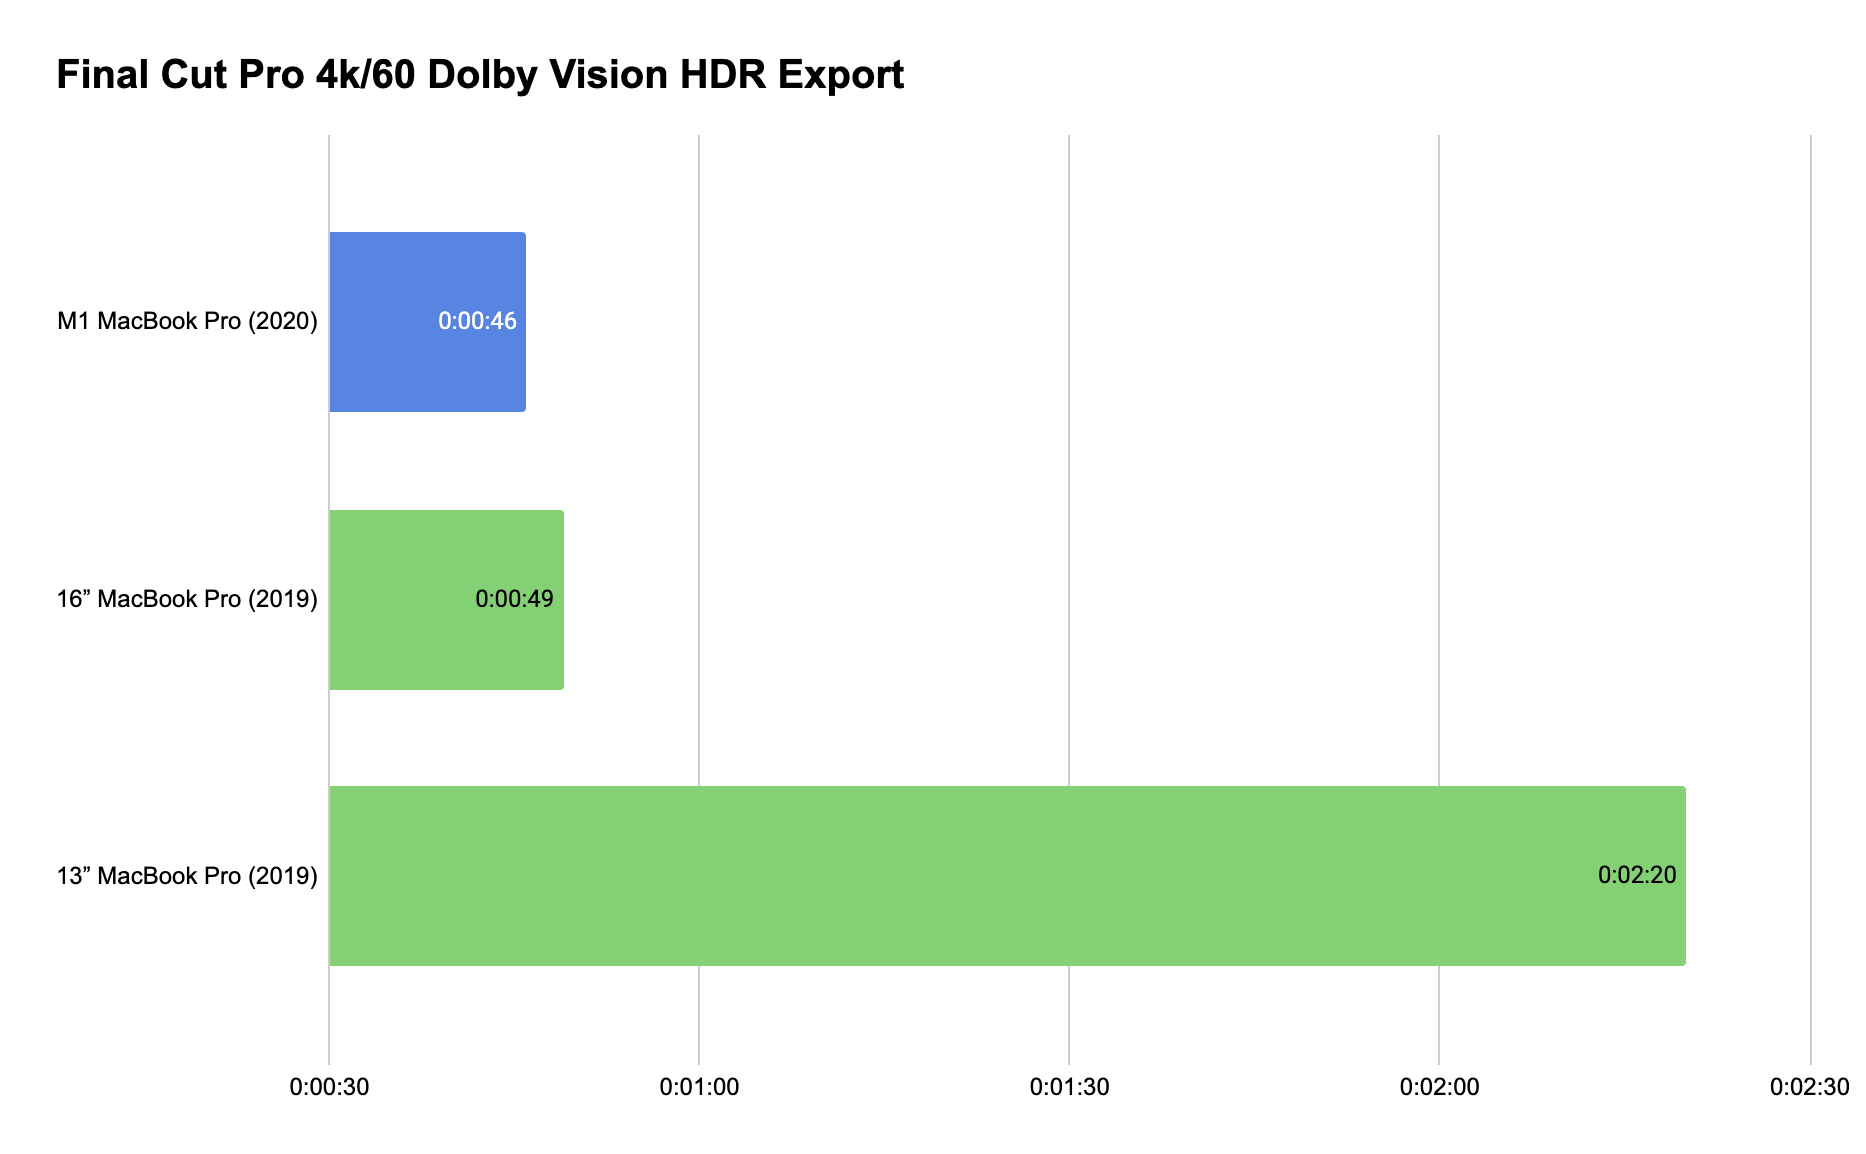 Final Cut Pro 4k60 Dolby Vision HDR